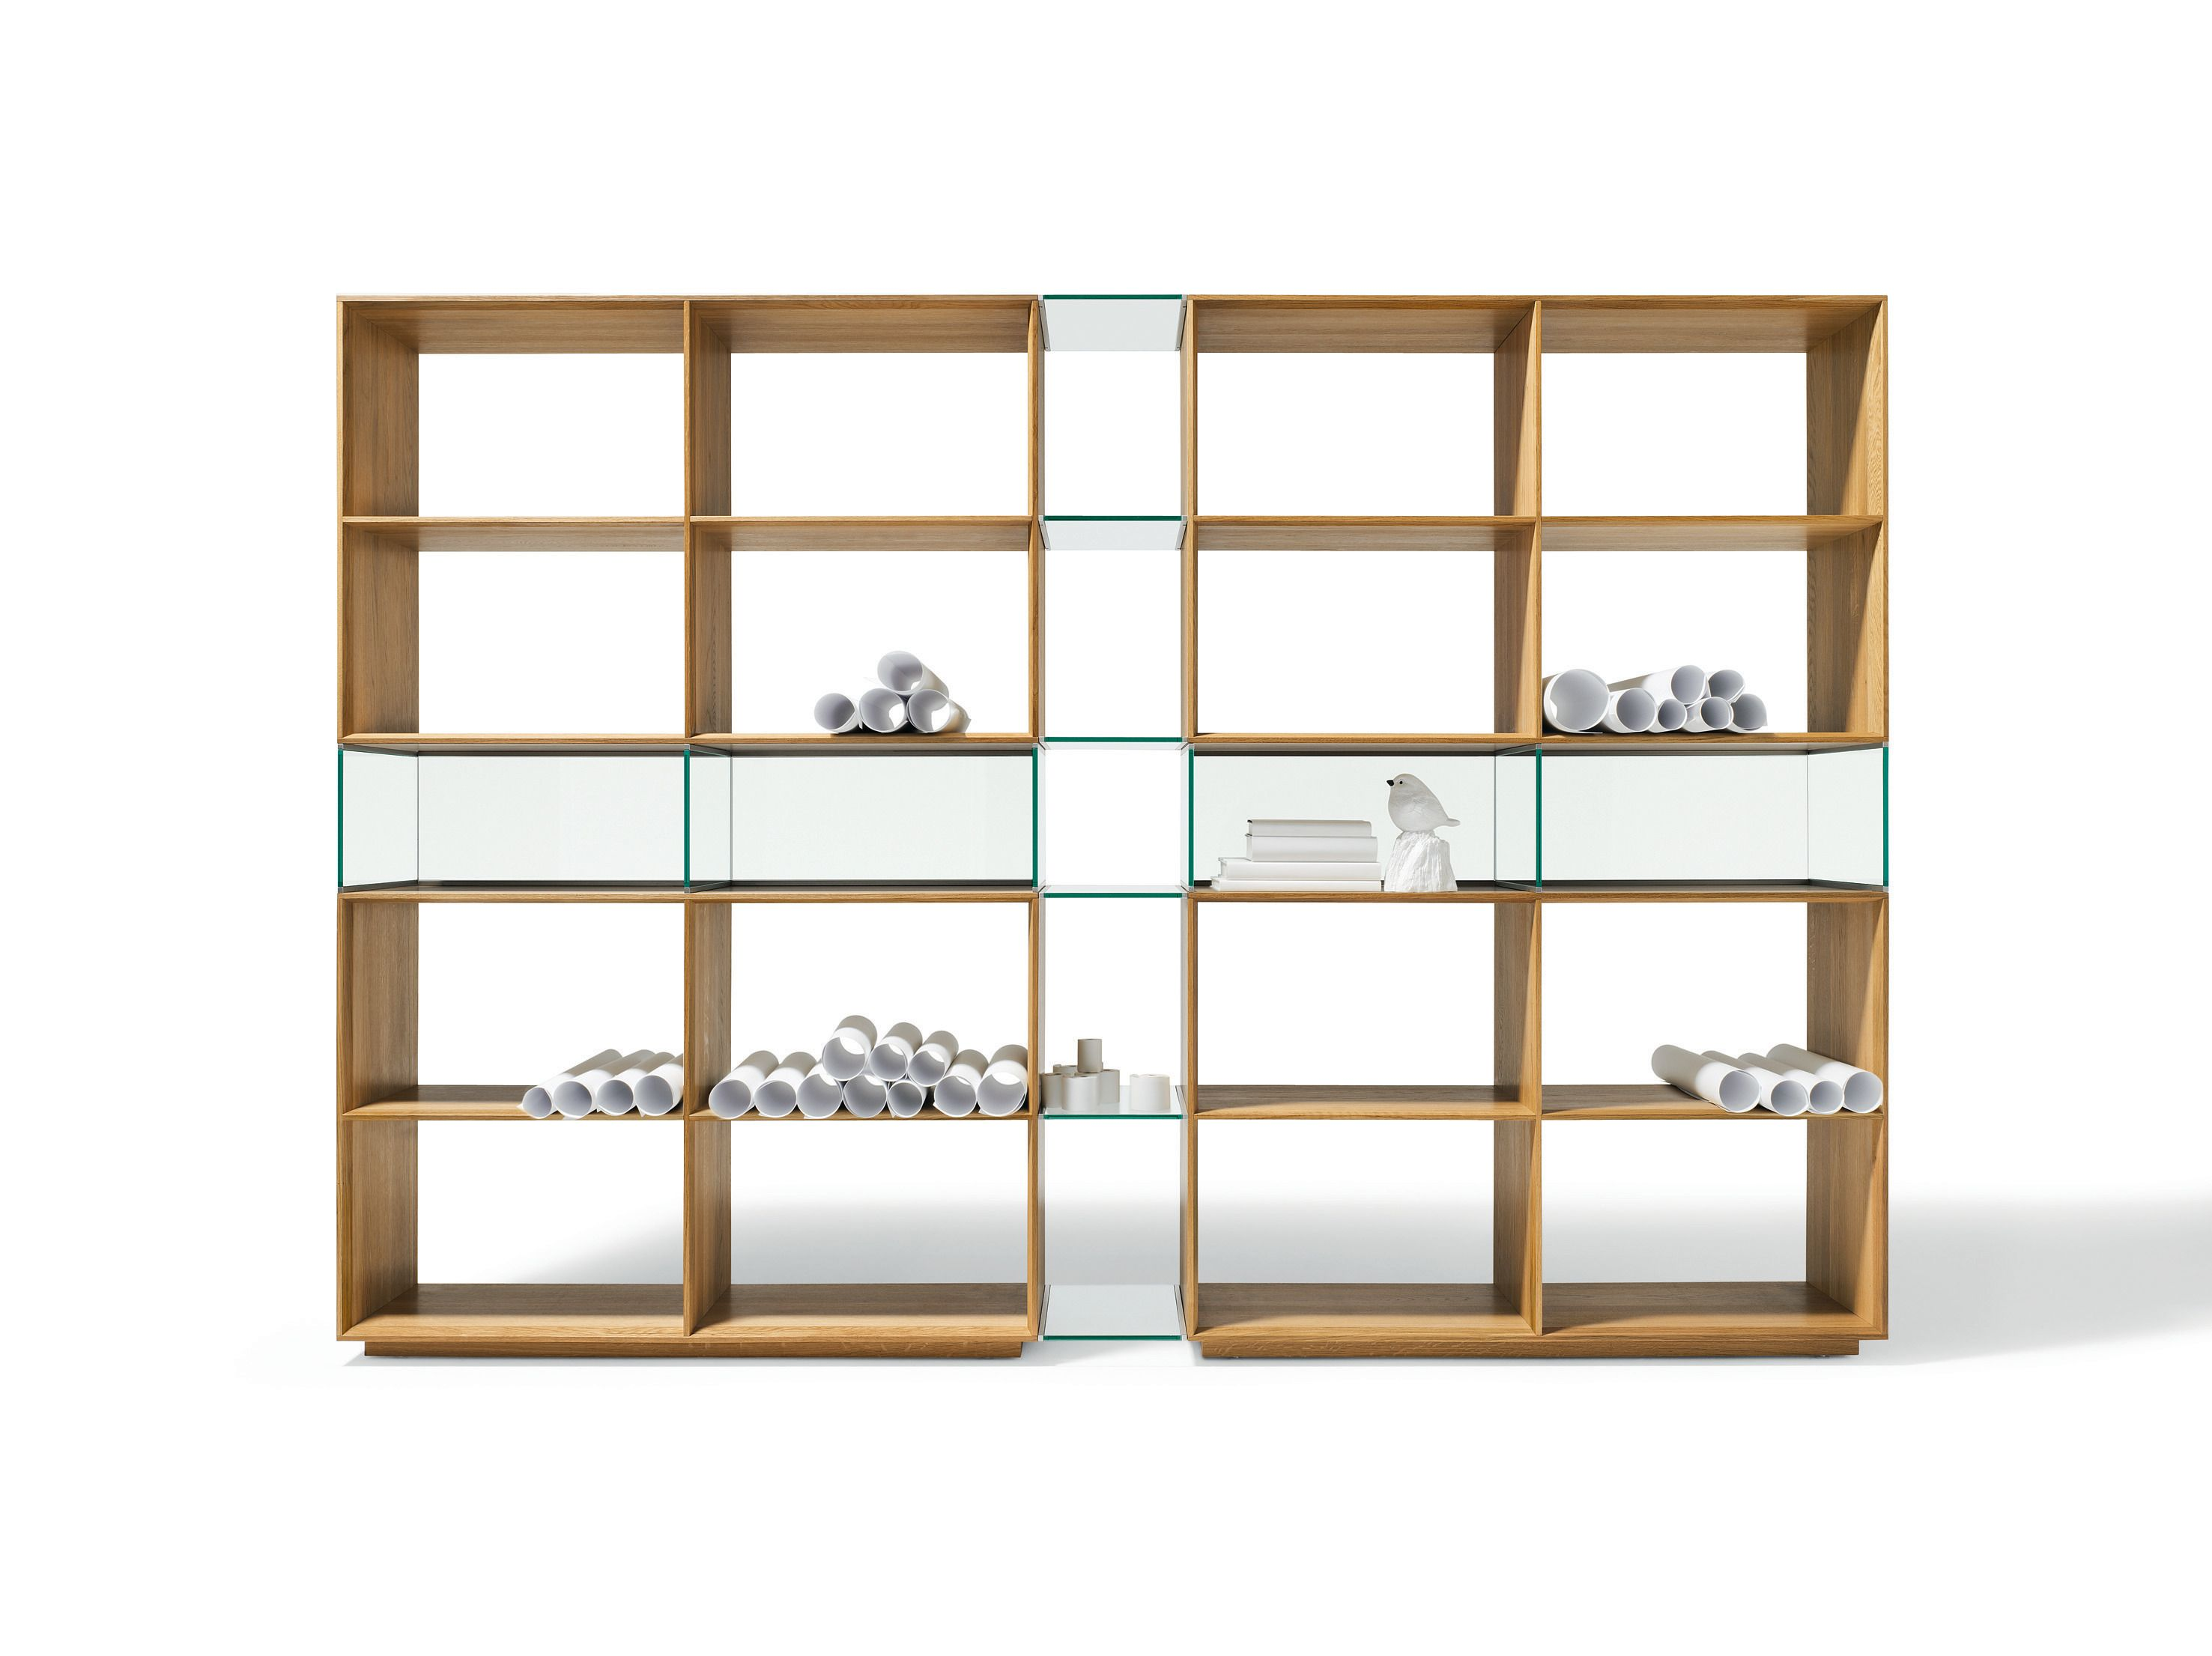 Accessories U0026 Furniture,Classic Modular Shelving Units With Light Brown  Wood Material On Combined Classy